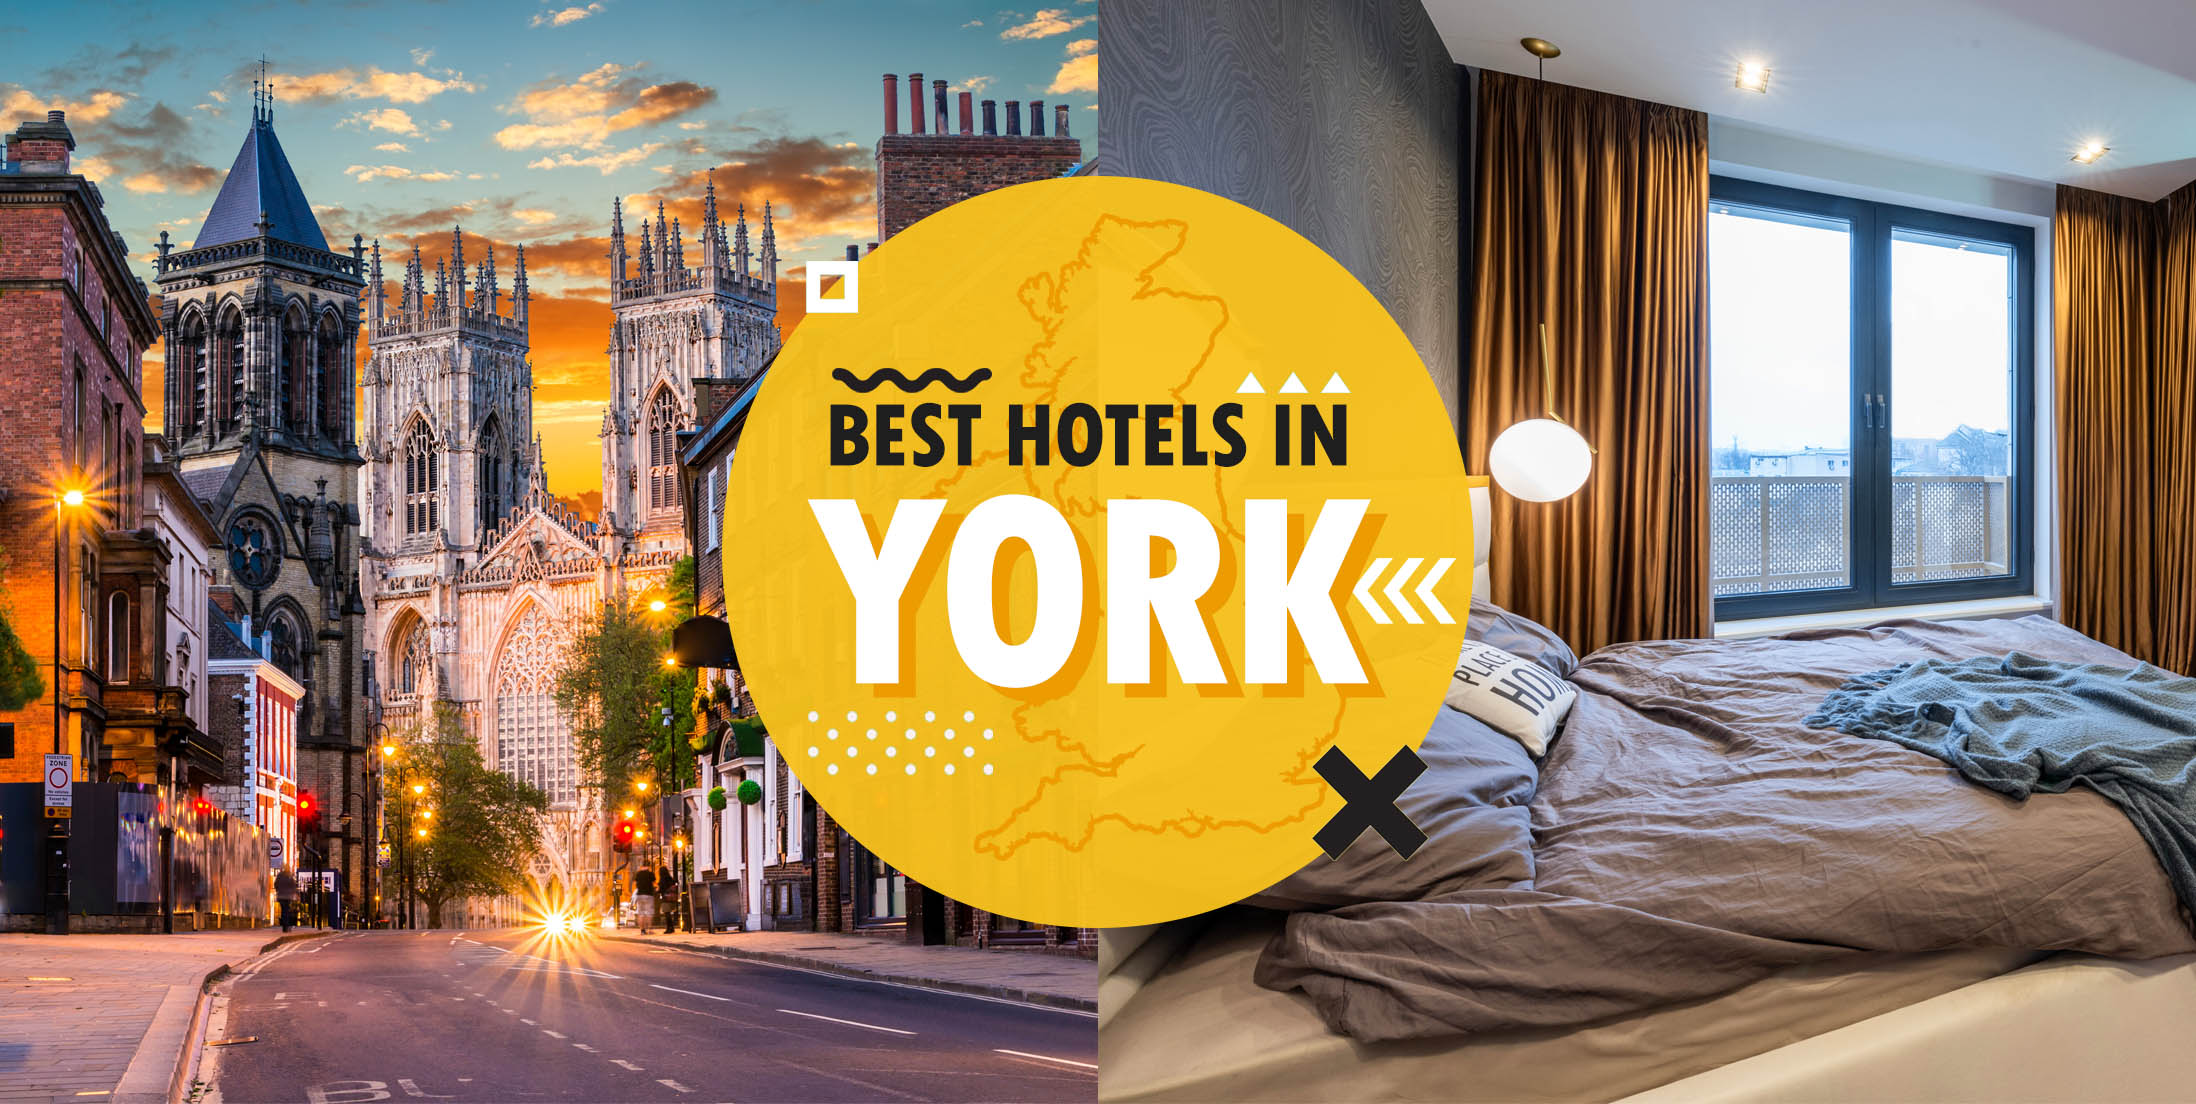 Best Hotels in York